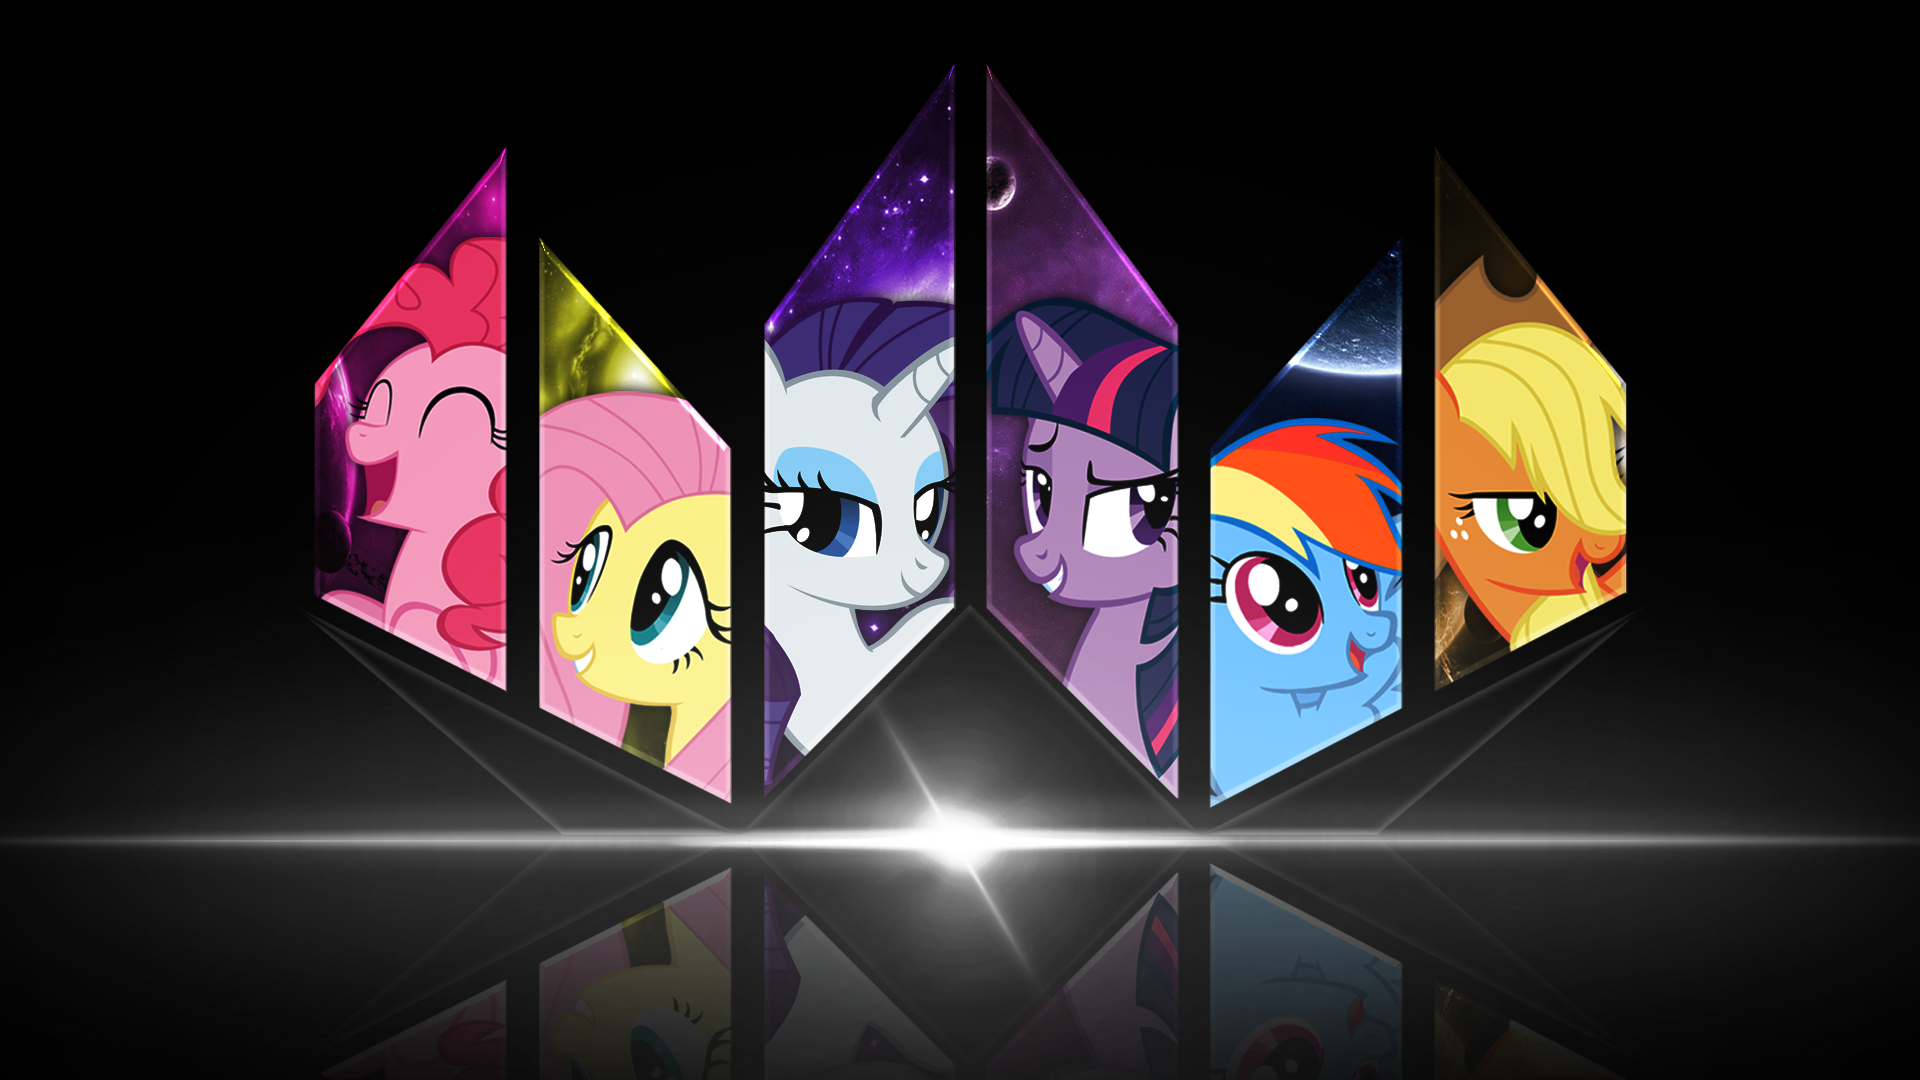 android mane 6 wallpaper - photo #23